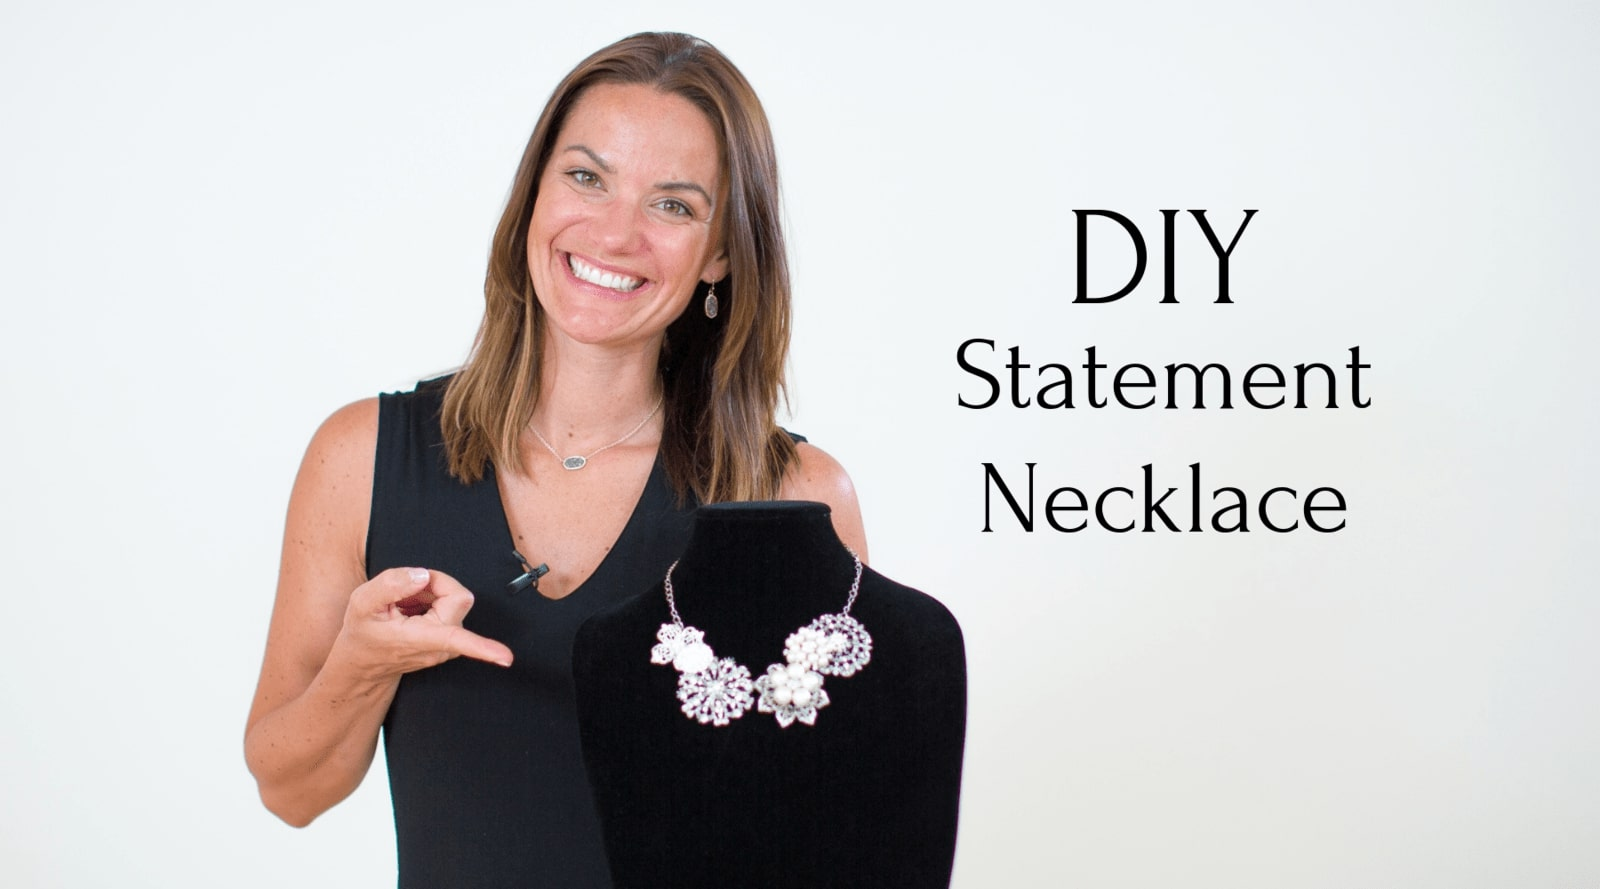 Statement Necklace Tutorial - DIY Wedding Necklace